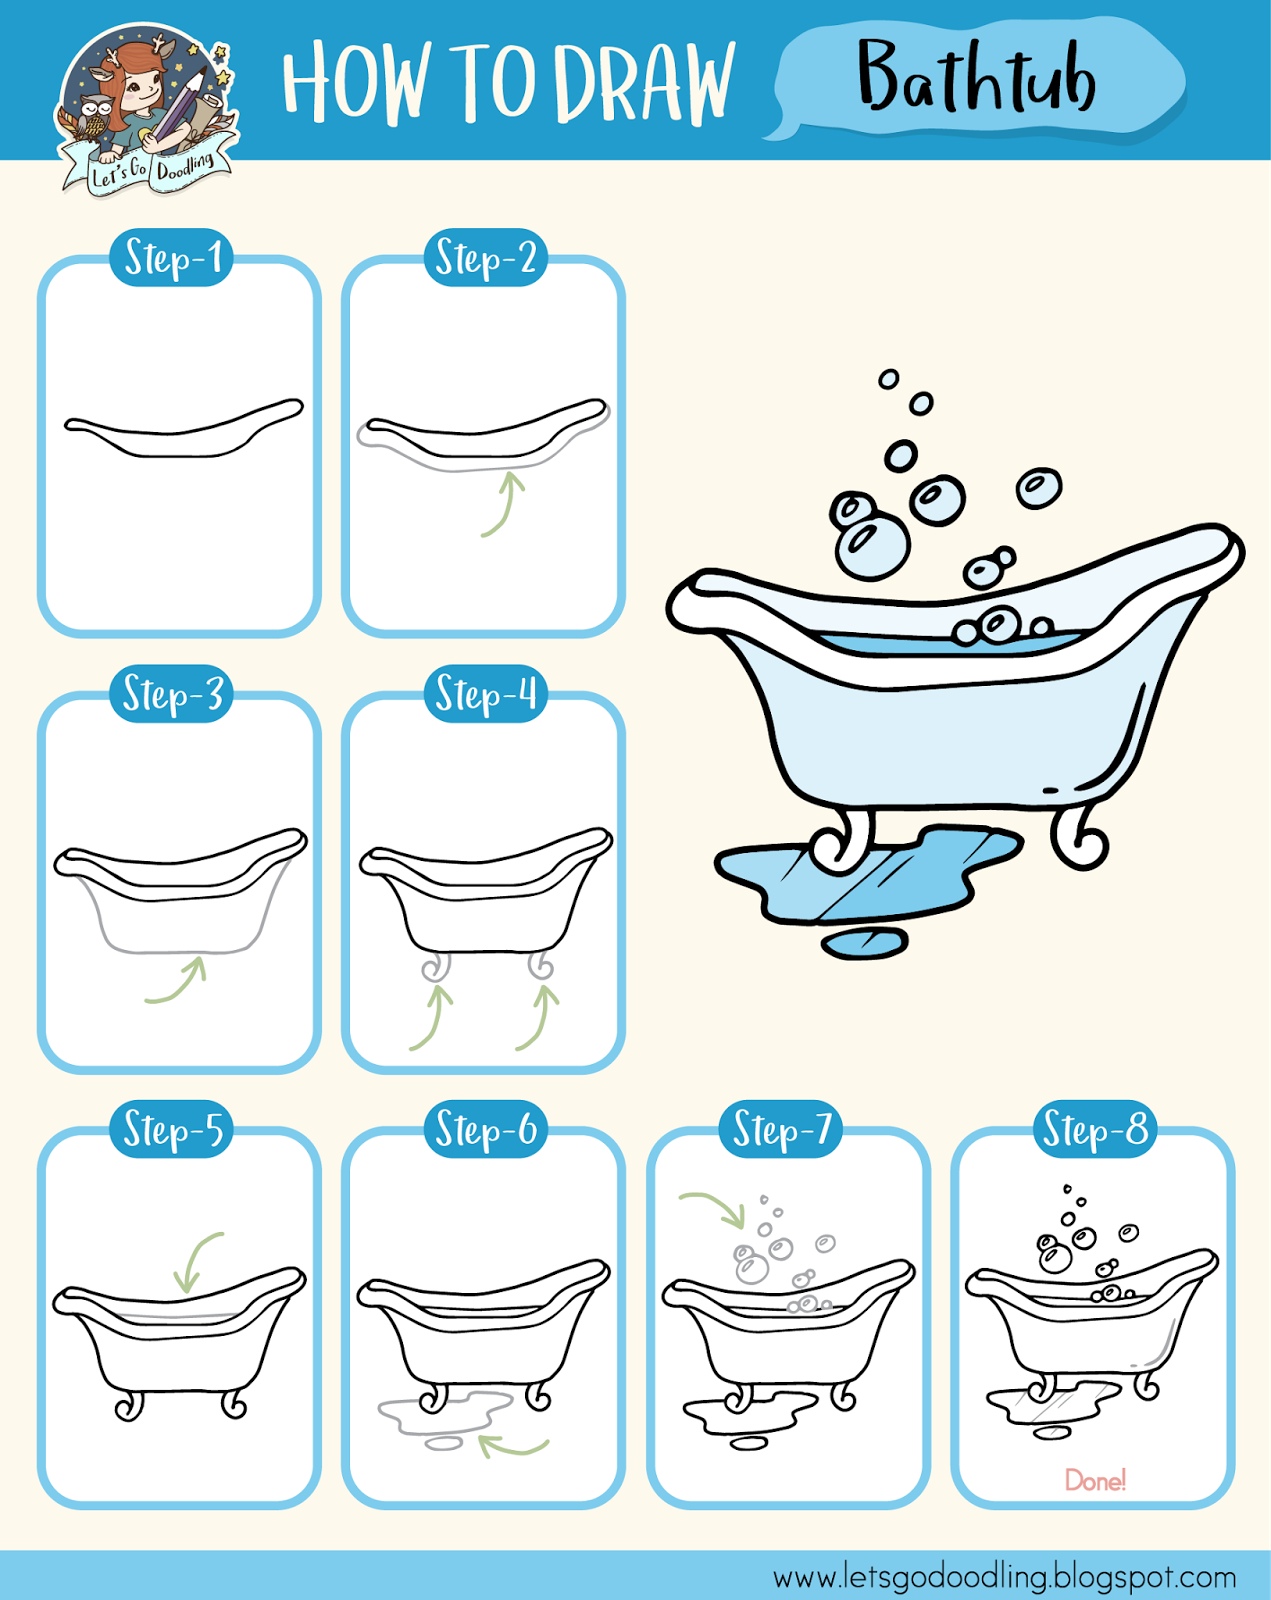 How To Draw Bathtub - Easy Step By Step Drawing Tutorial